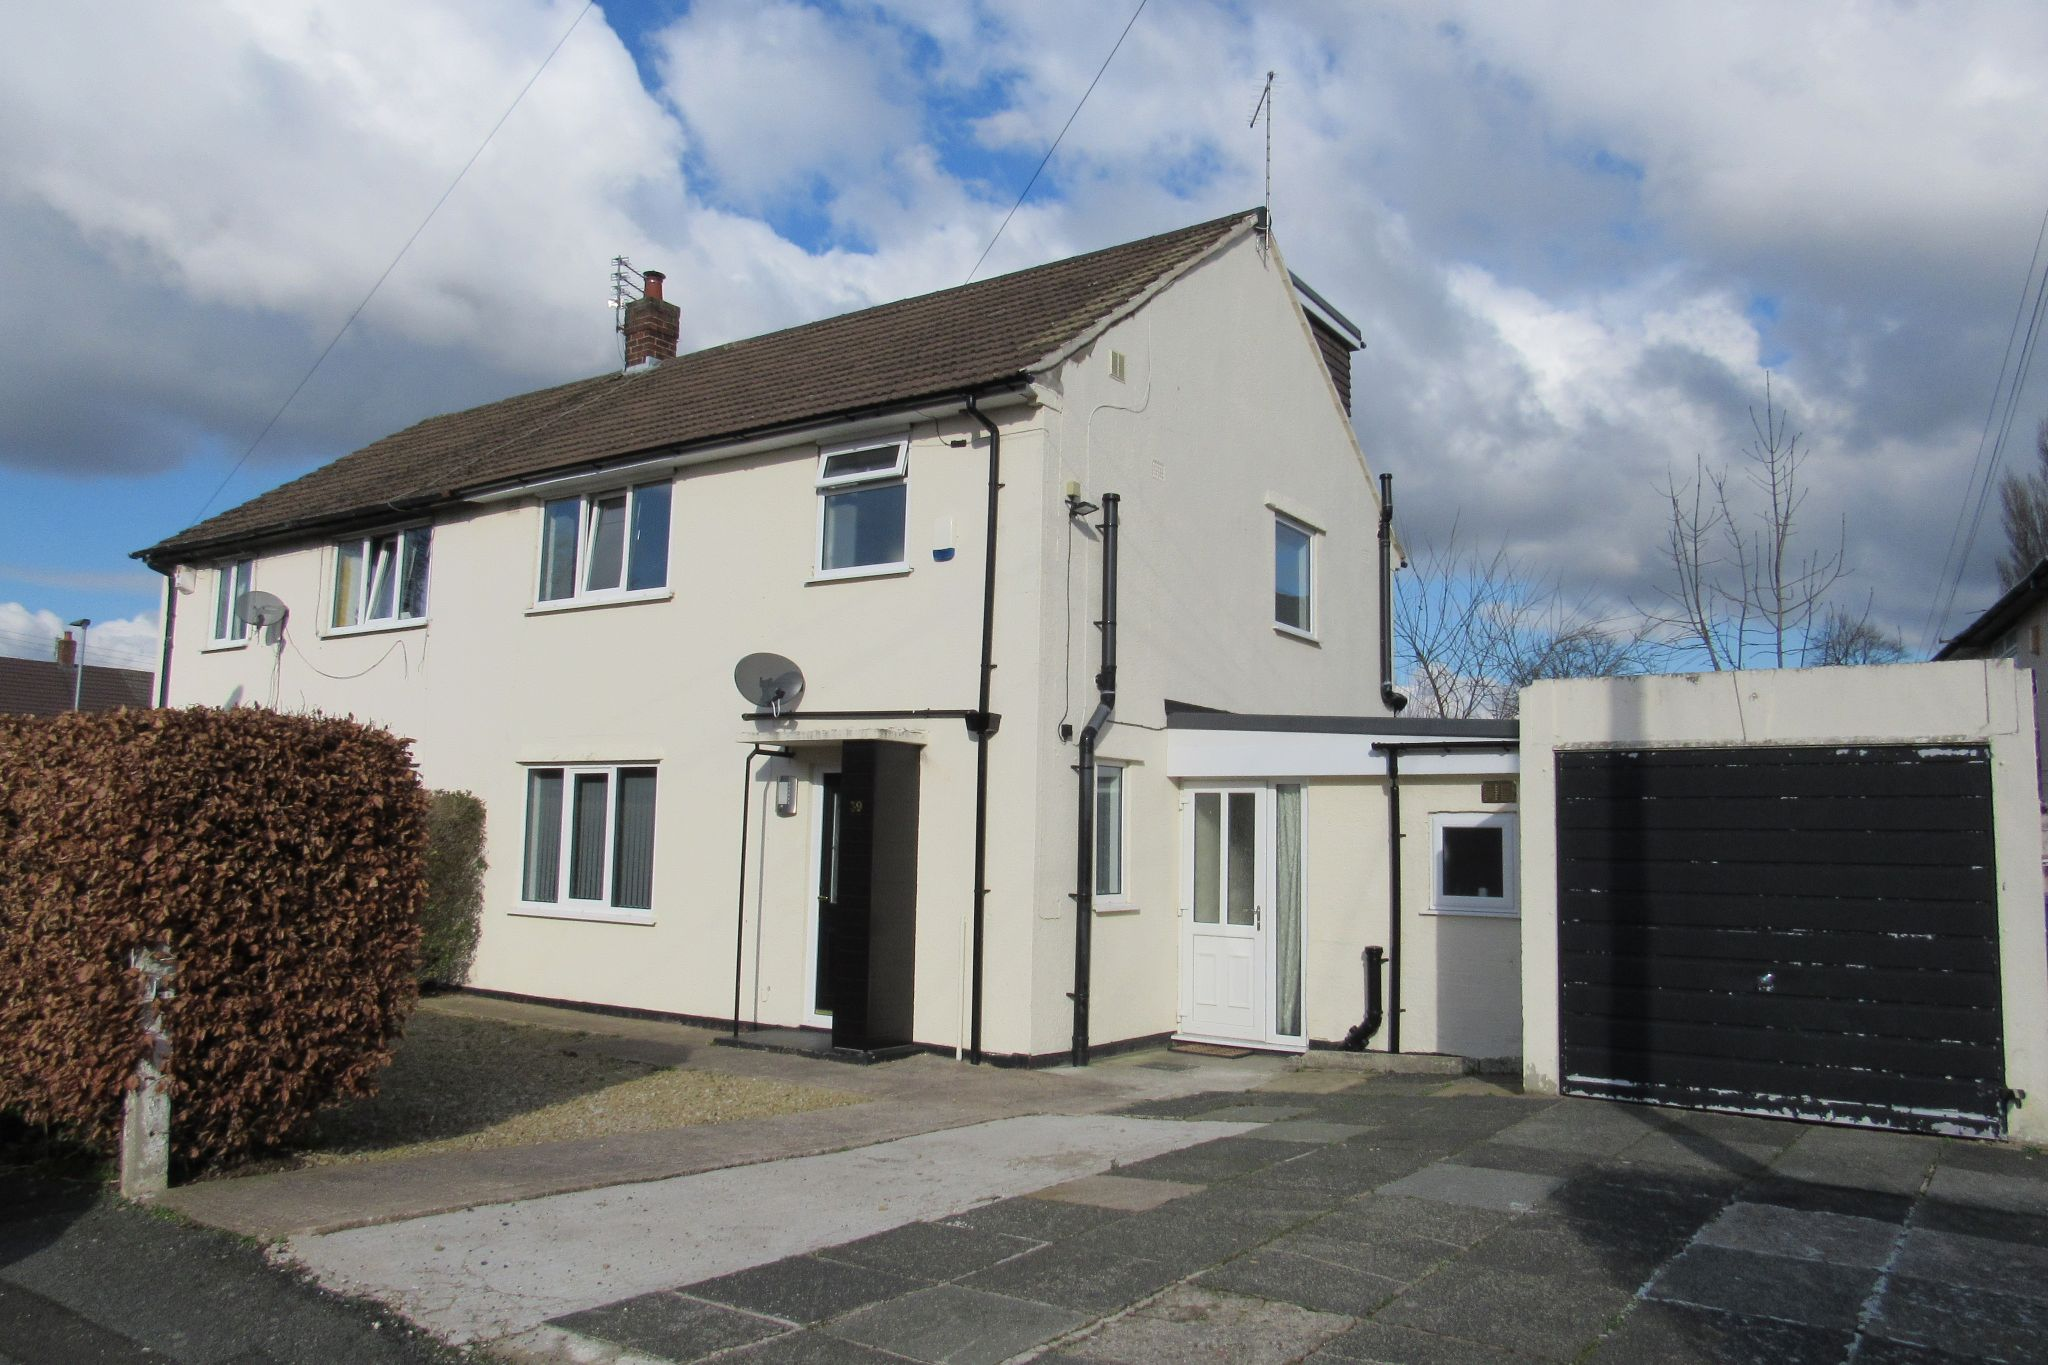 4 bedroom semi-detached house SSTC in Manchester - Photograph 1.